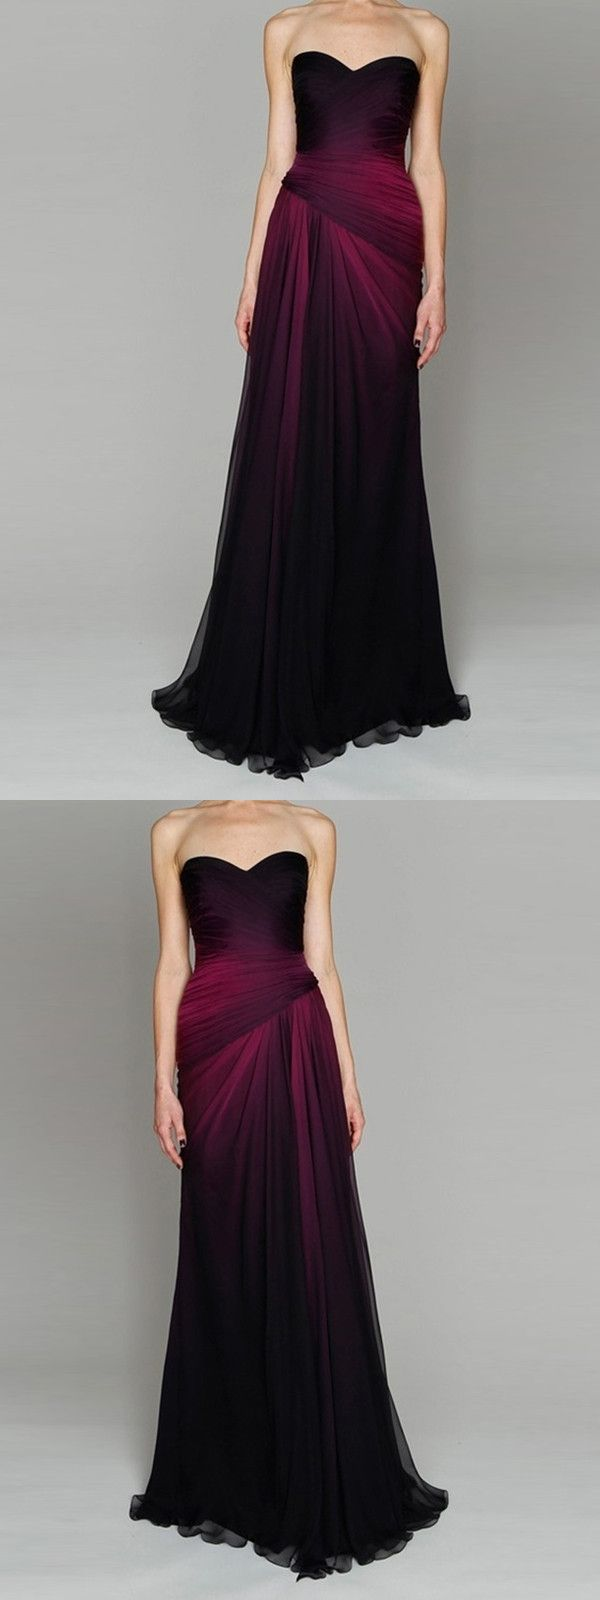 Chic sweetheart ombre prom dress black and fuchsia chiffon prom